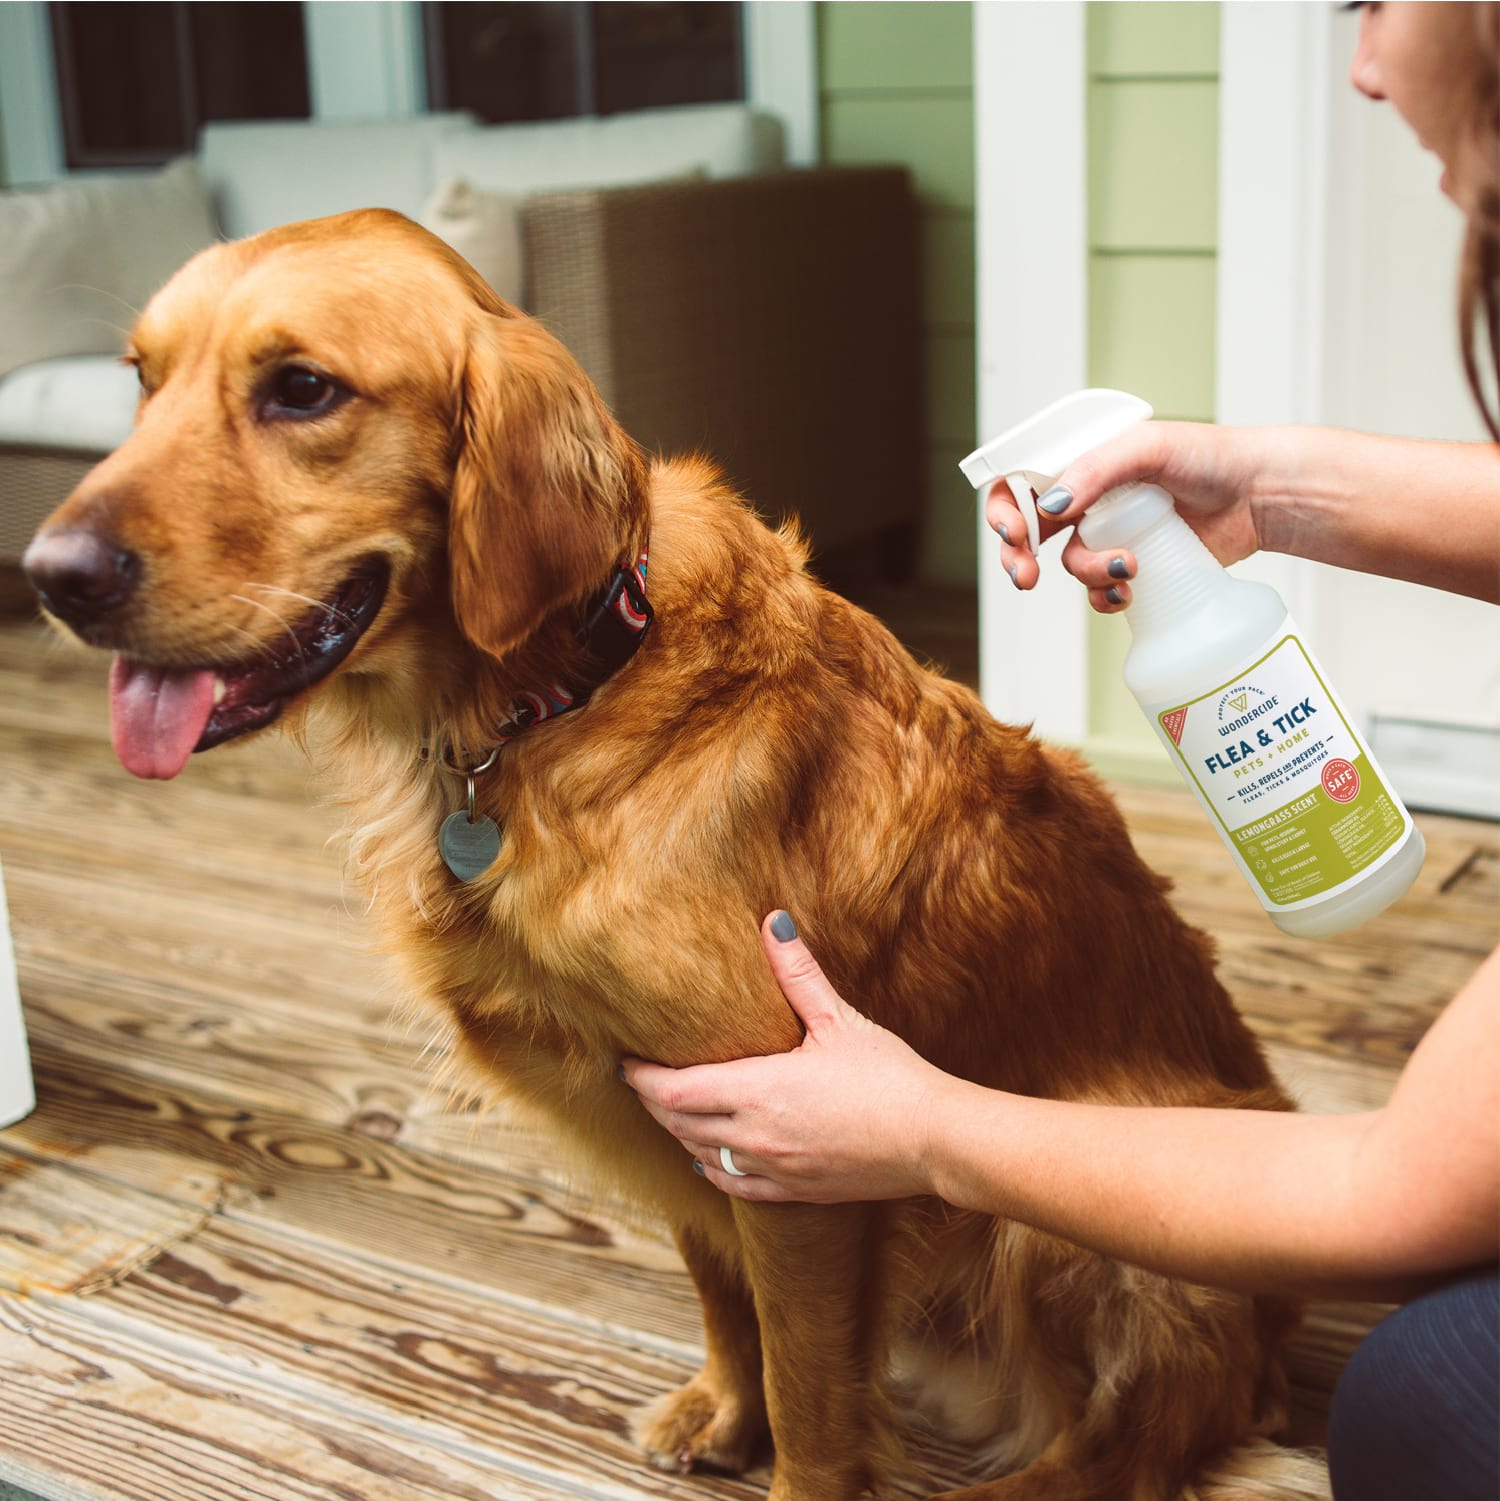 Lemongrass Flea & Tick Spray for Pets + Home - In Use